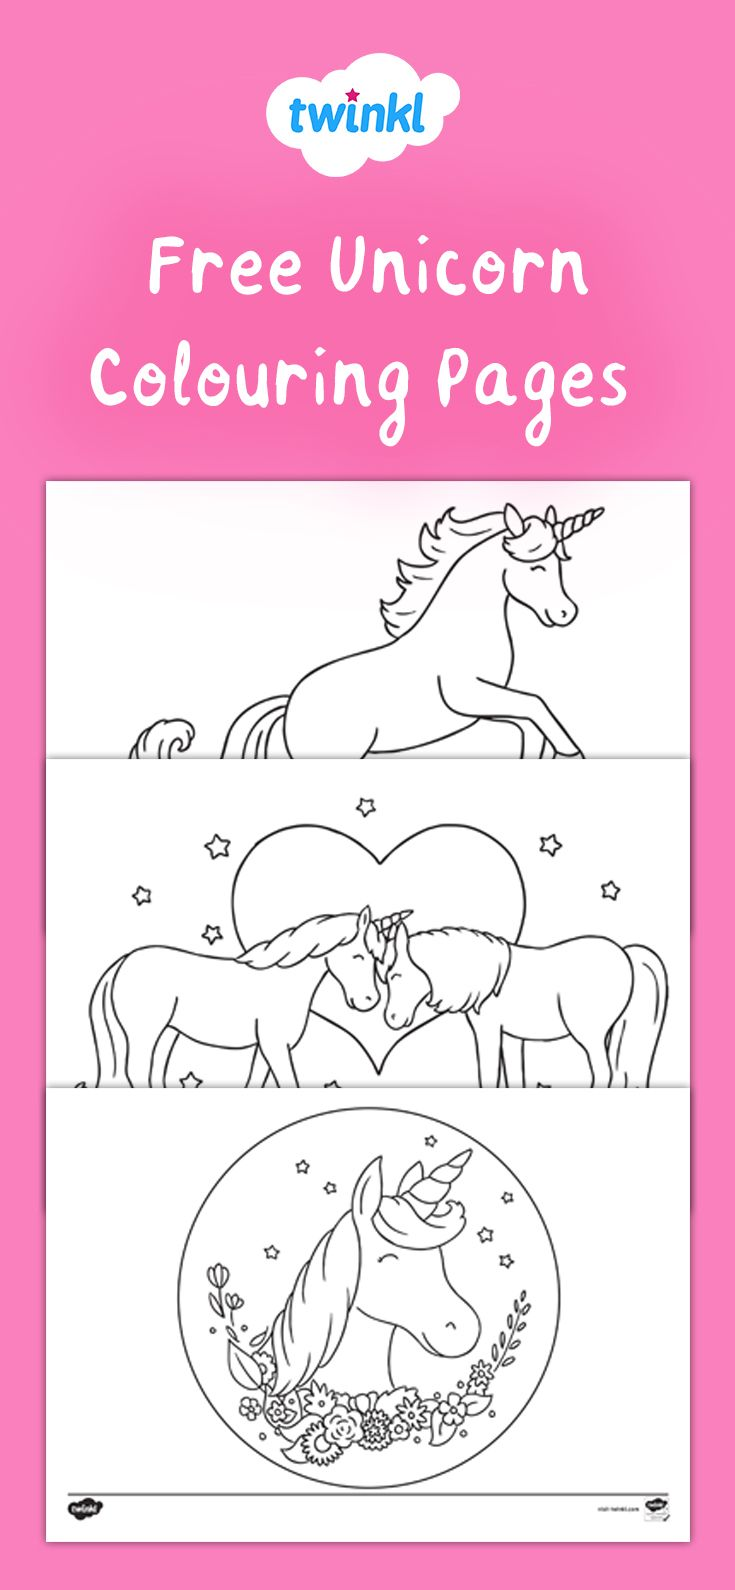 Unicorn Colouring Pages Unicorn Coloring Pages Classroom Art Display Colouring Pages